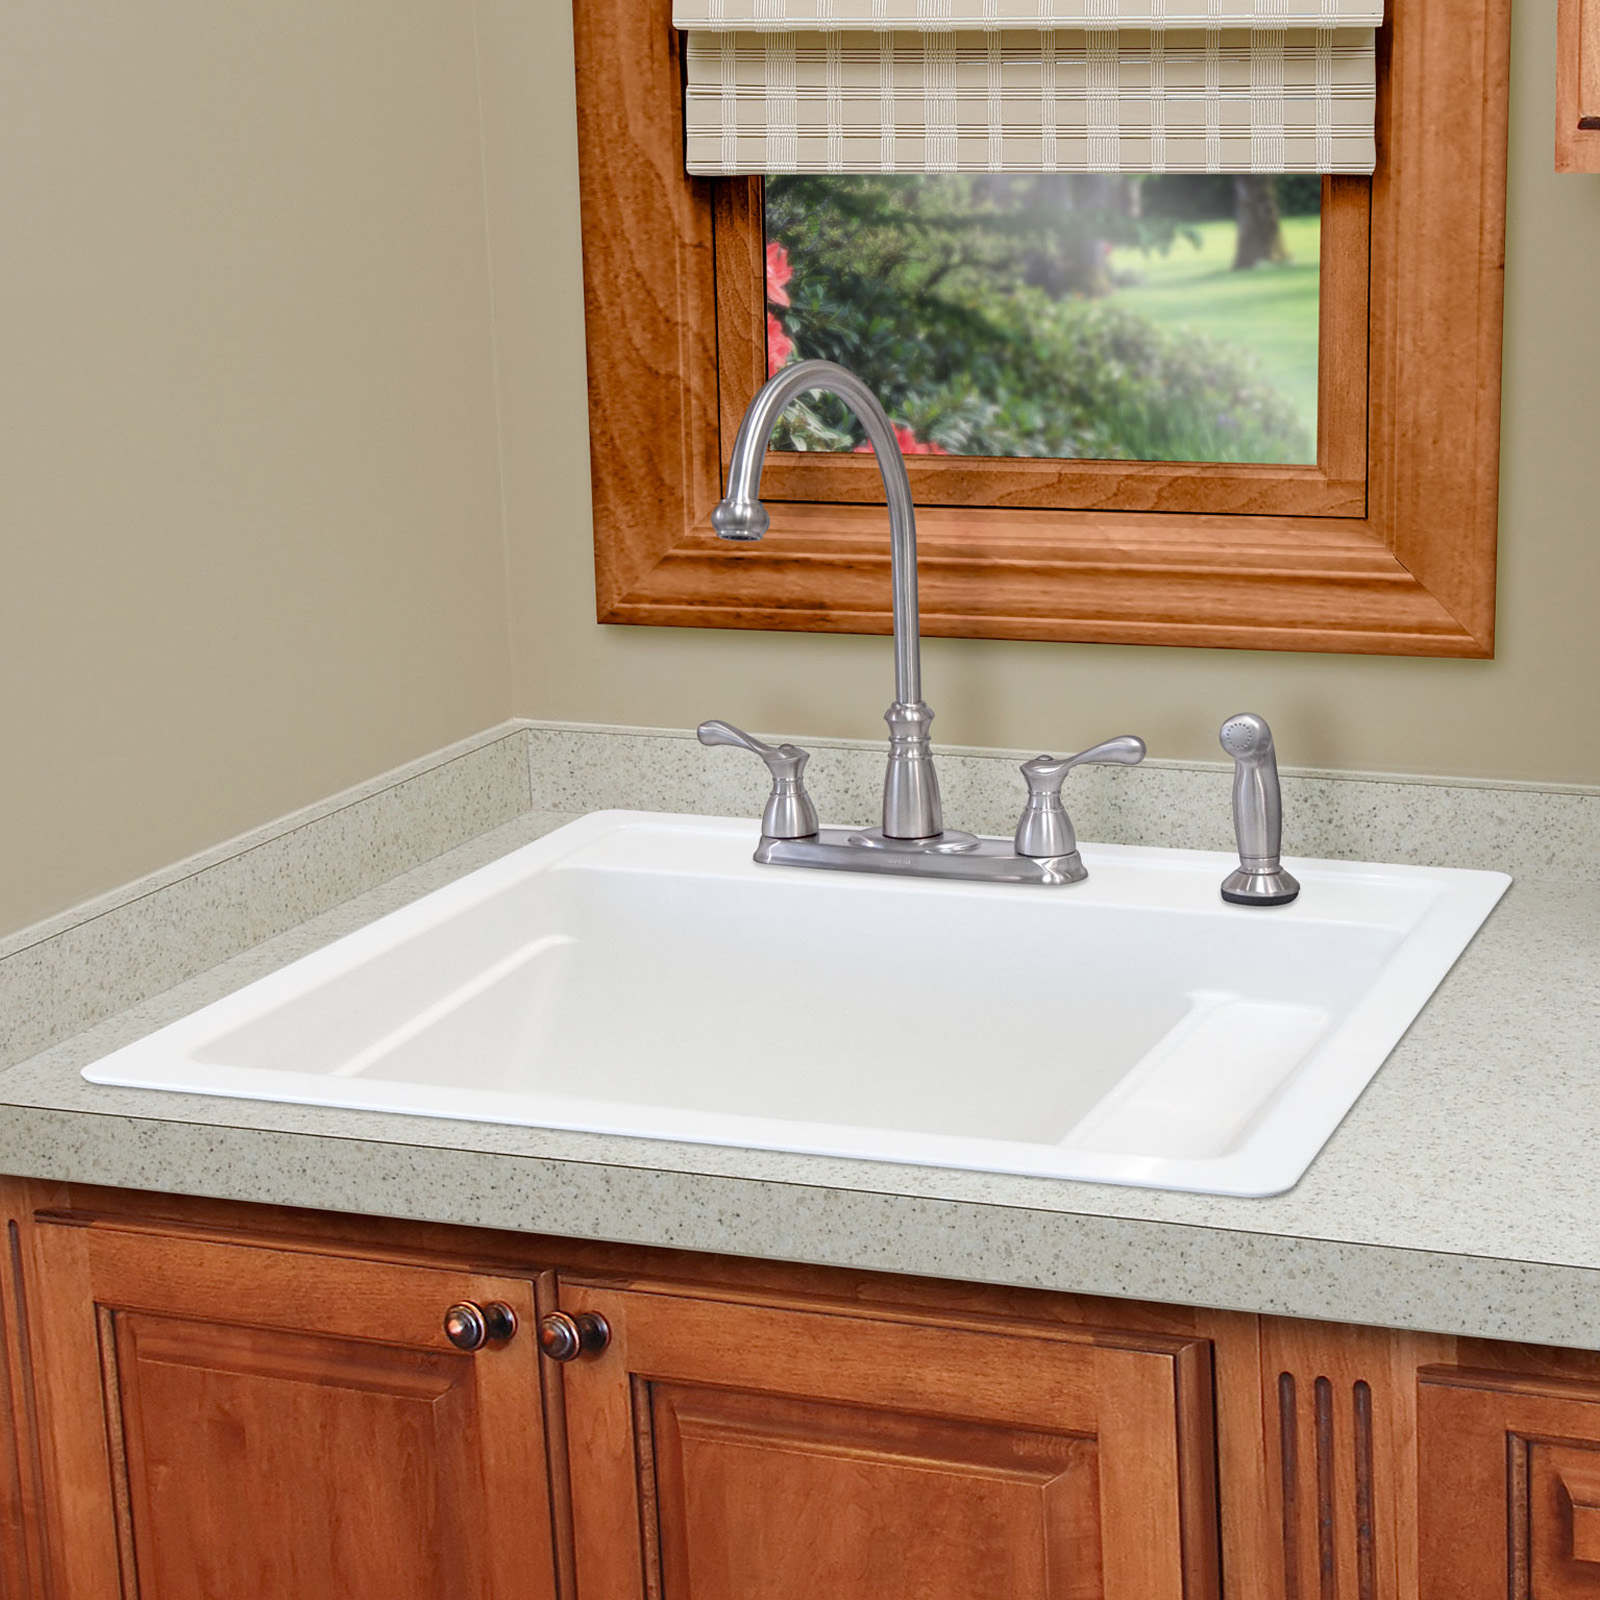 ... 25 Single Basin Drop In Utility Sink - Utility Sinks at Hayneedle